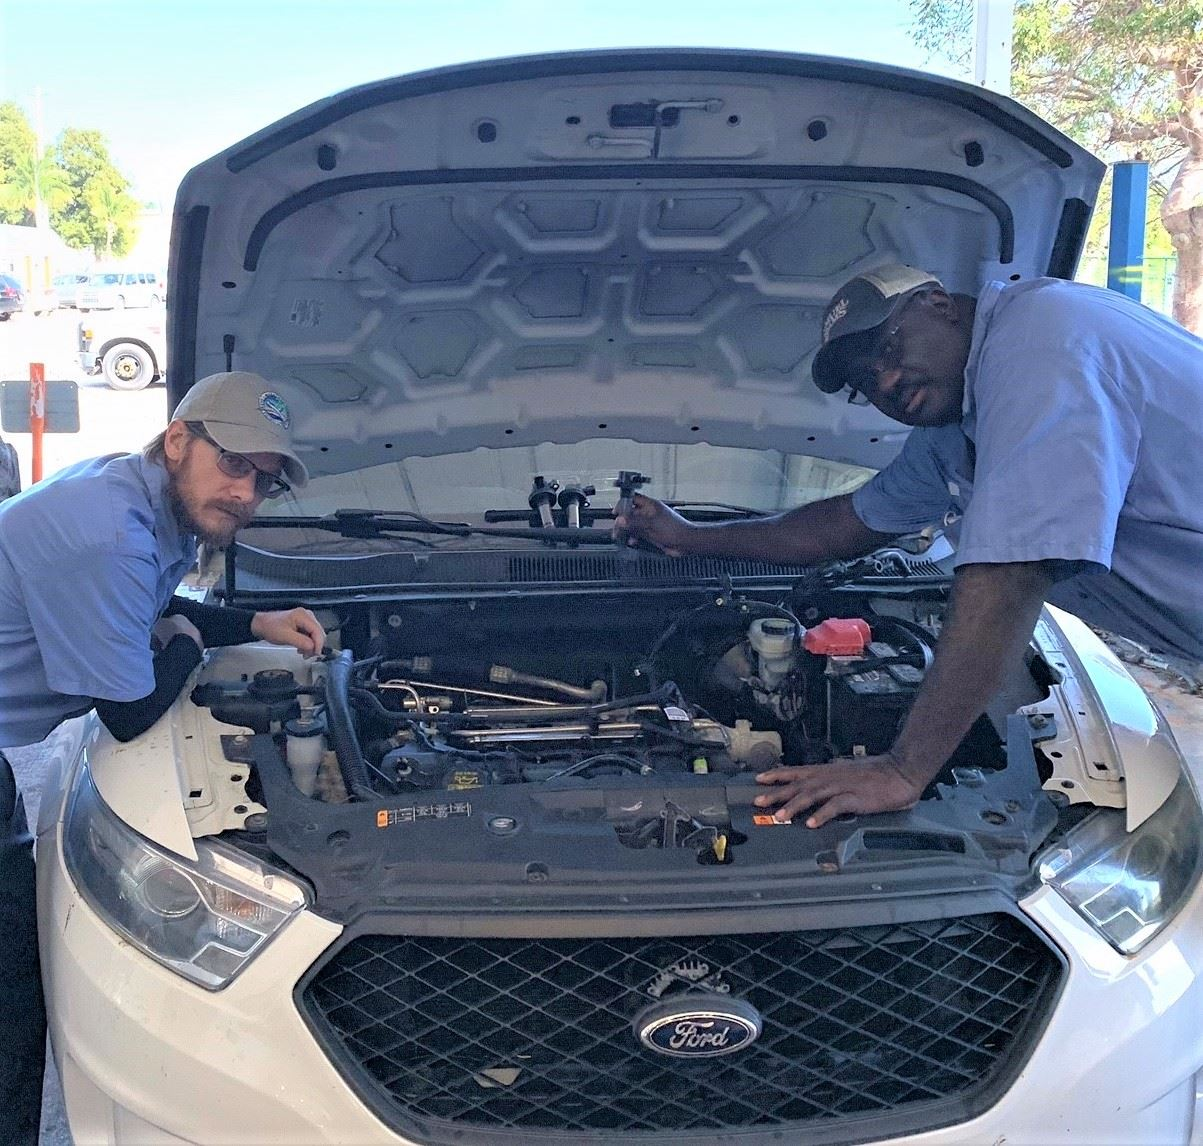 J Faulkner and Dean Steele look inside the hood of a white Ford car